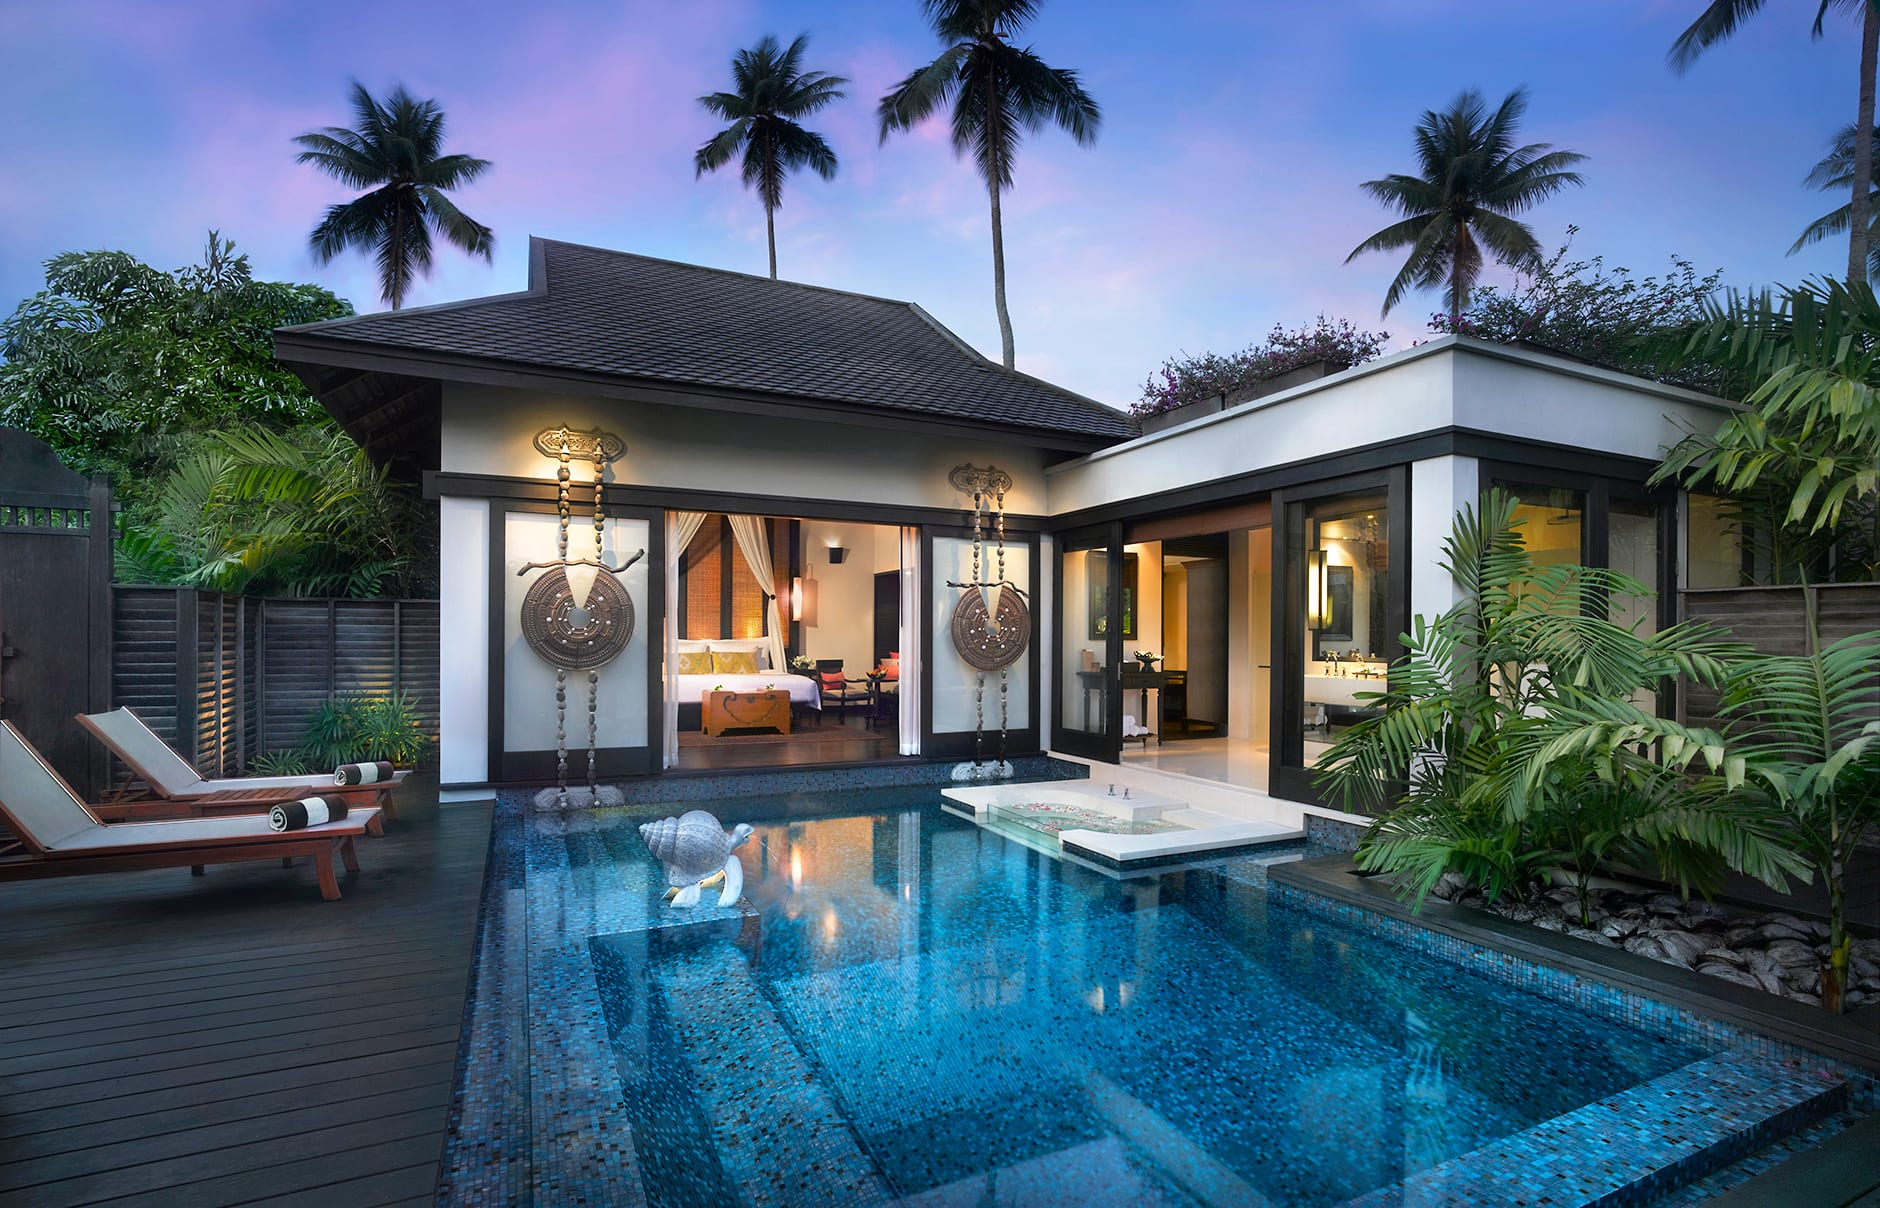 Anantara phuket villas luxury hotels travelplusstyle for Villas with pools